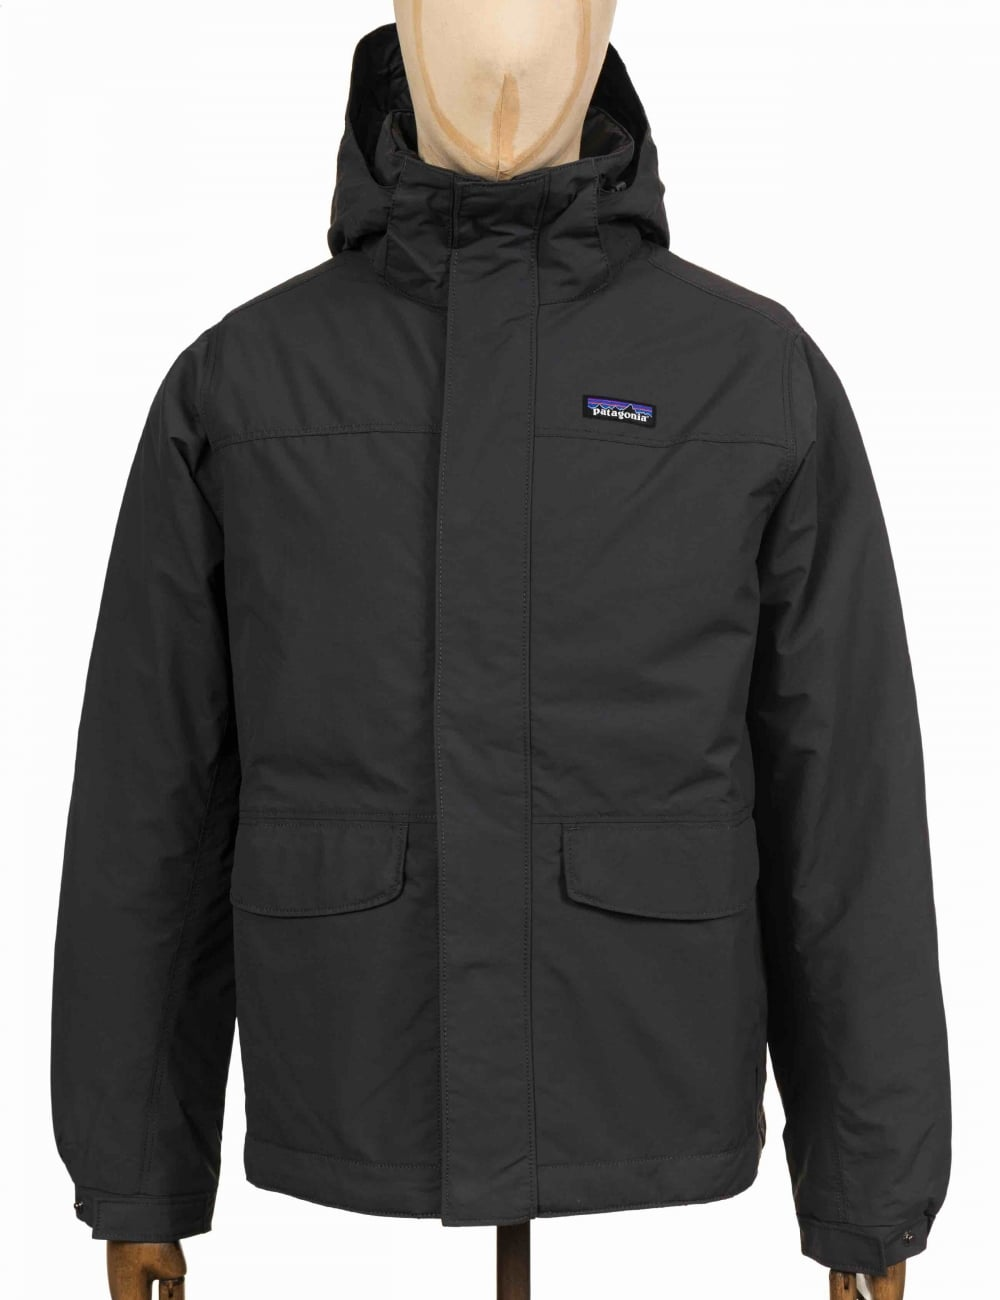 2f6dea09f8f Patagonia Isthmus Jacket - Forge Grey - Clothing from Fat Buddha ...